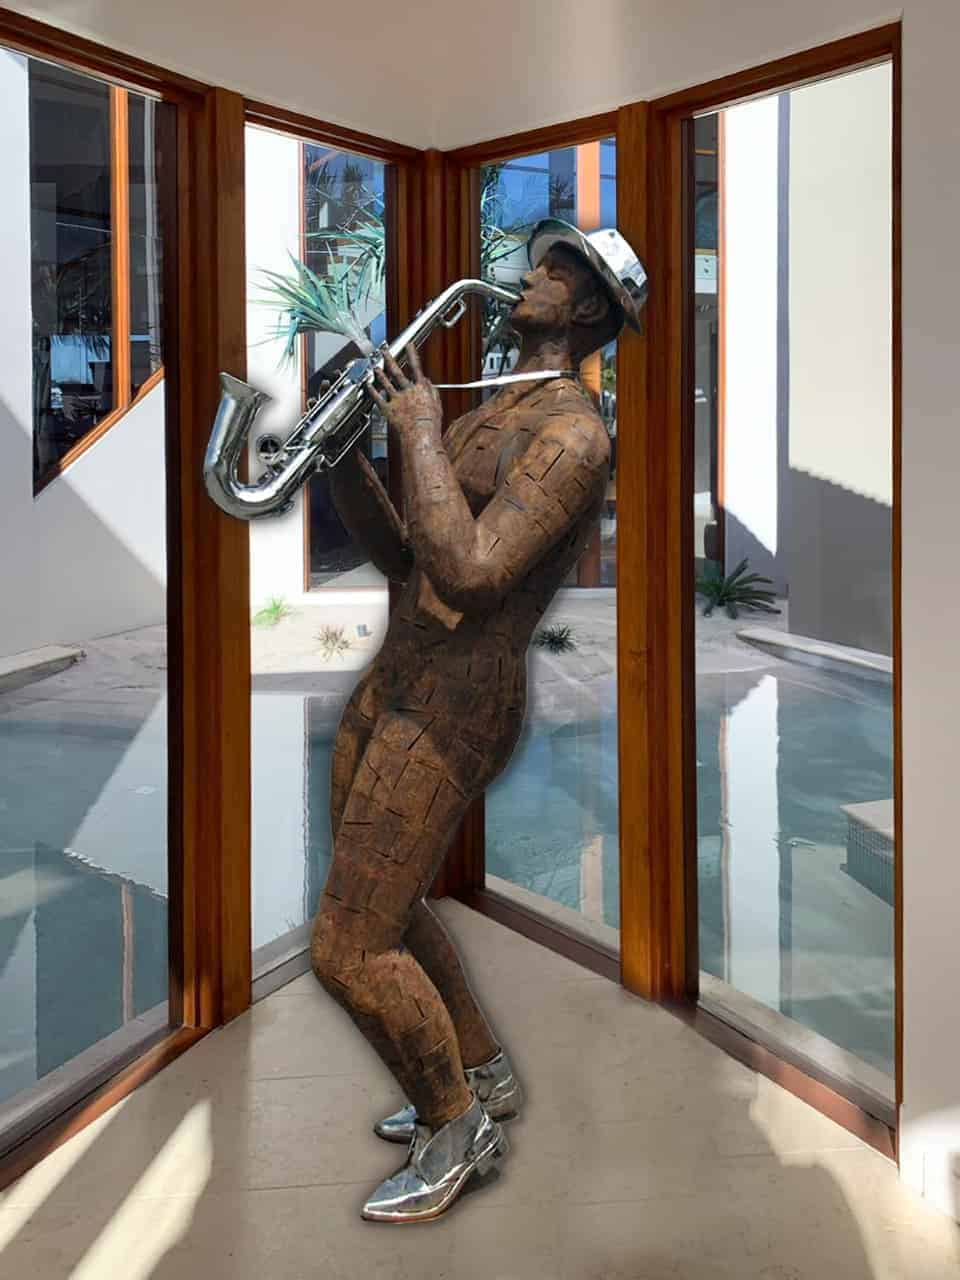 Saxy-and-you-know-it---190x60x60cm--CORTEN-&-STAINLESS-STEEL-[Stainless-steel,Outdoor,Landmark]--Nicole-Allen-Sculpture--Australian-ArtistSaxy-and-you-know-it---190x60x60cm--CORTEN-&-STAINLESS-STEEL-[Stainless-steel,Outdoor,Landmark]--Nicole-Allen-Sculpture--Australian-Artist